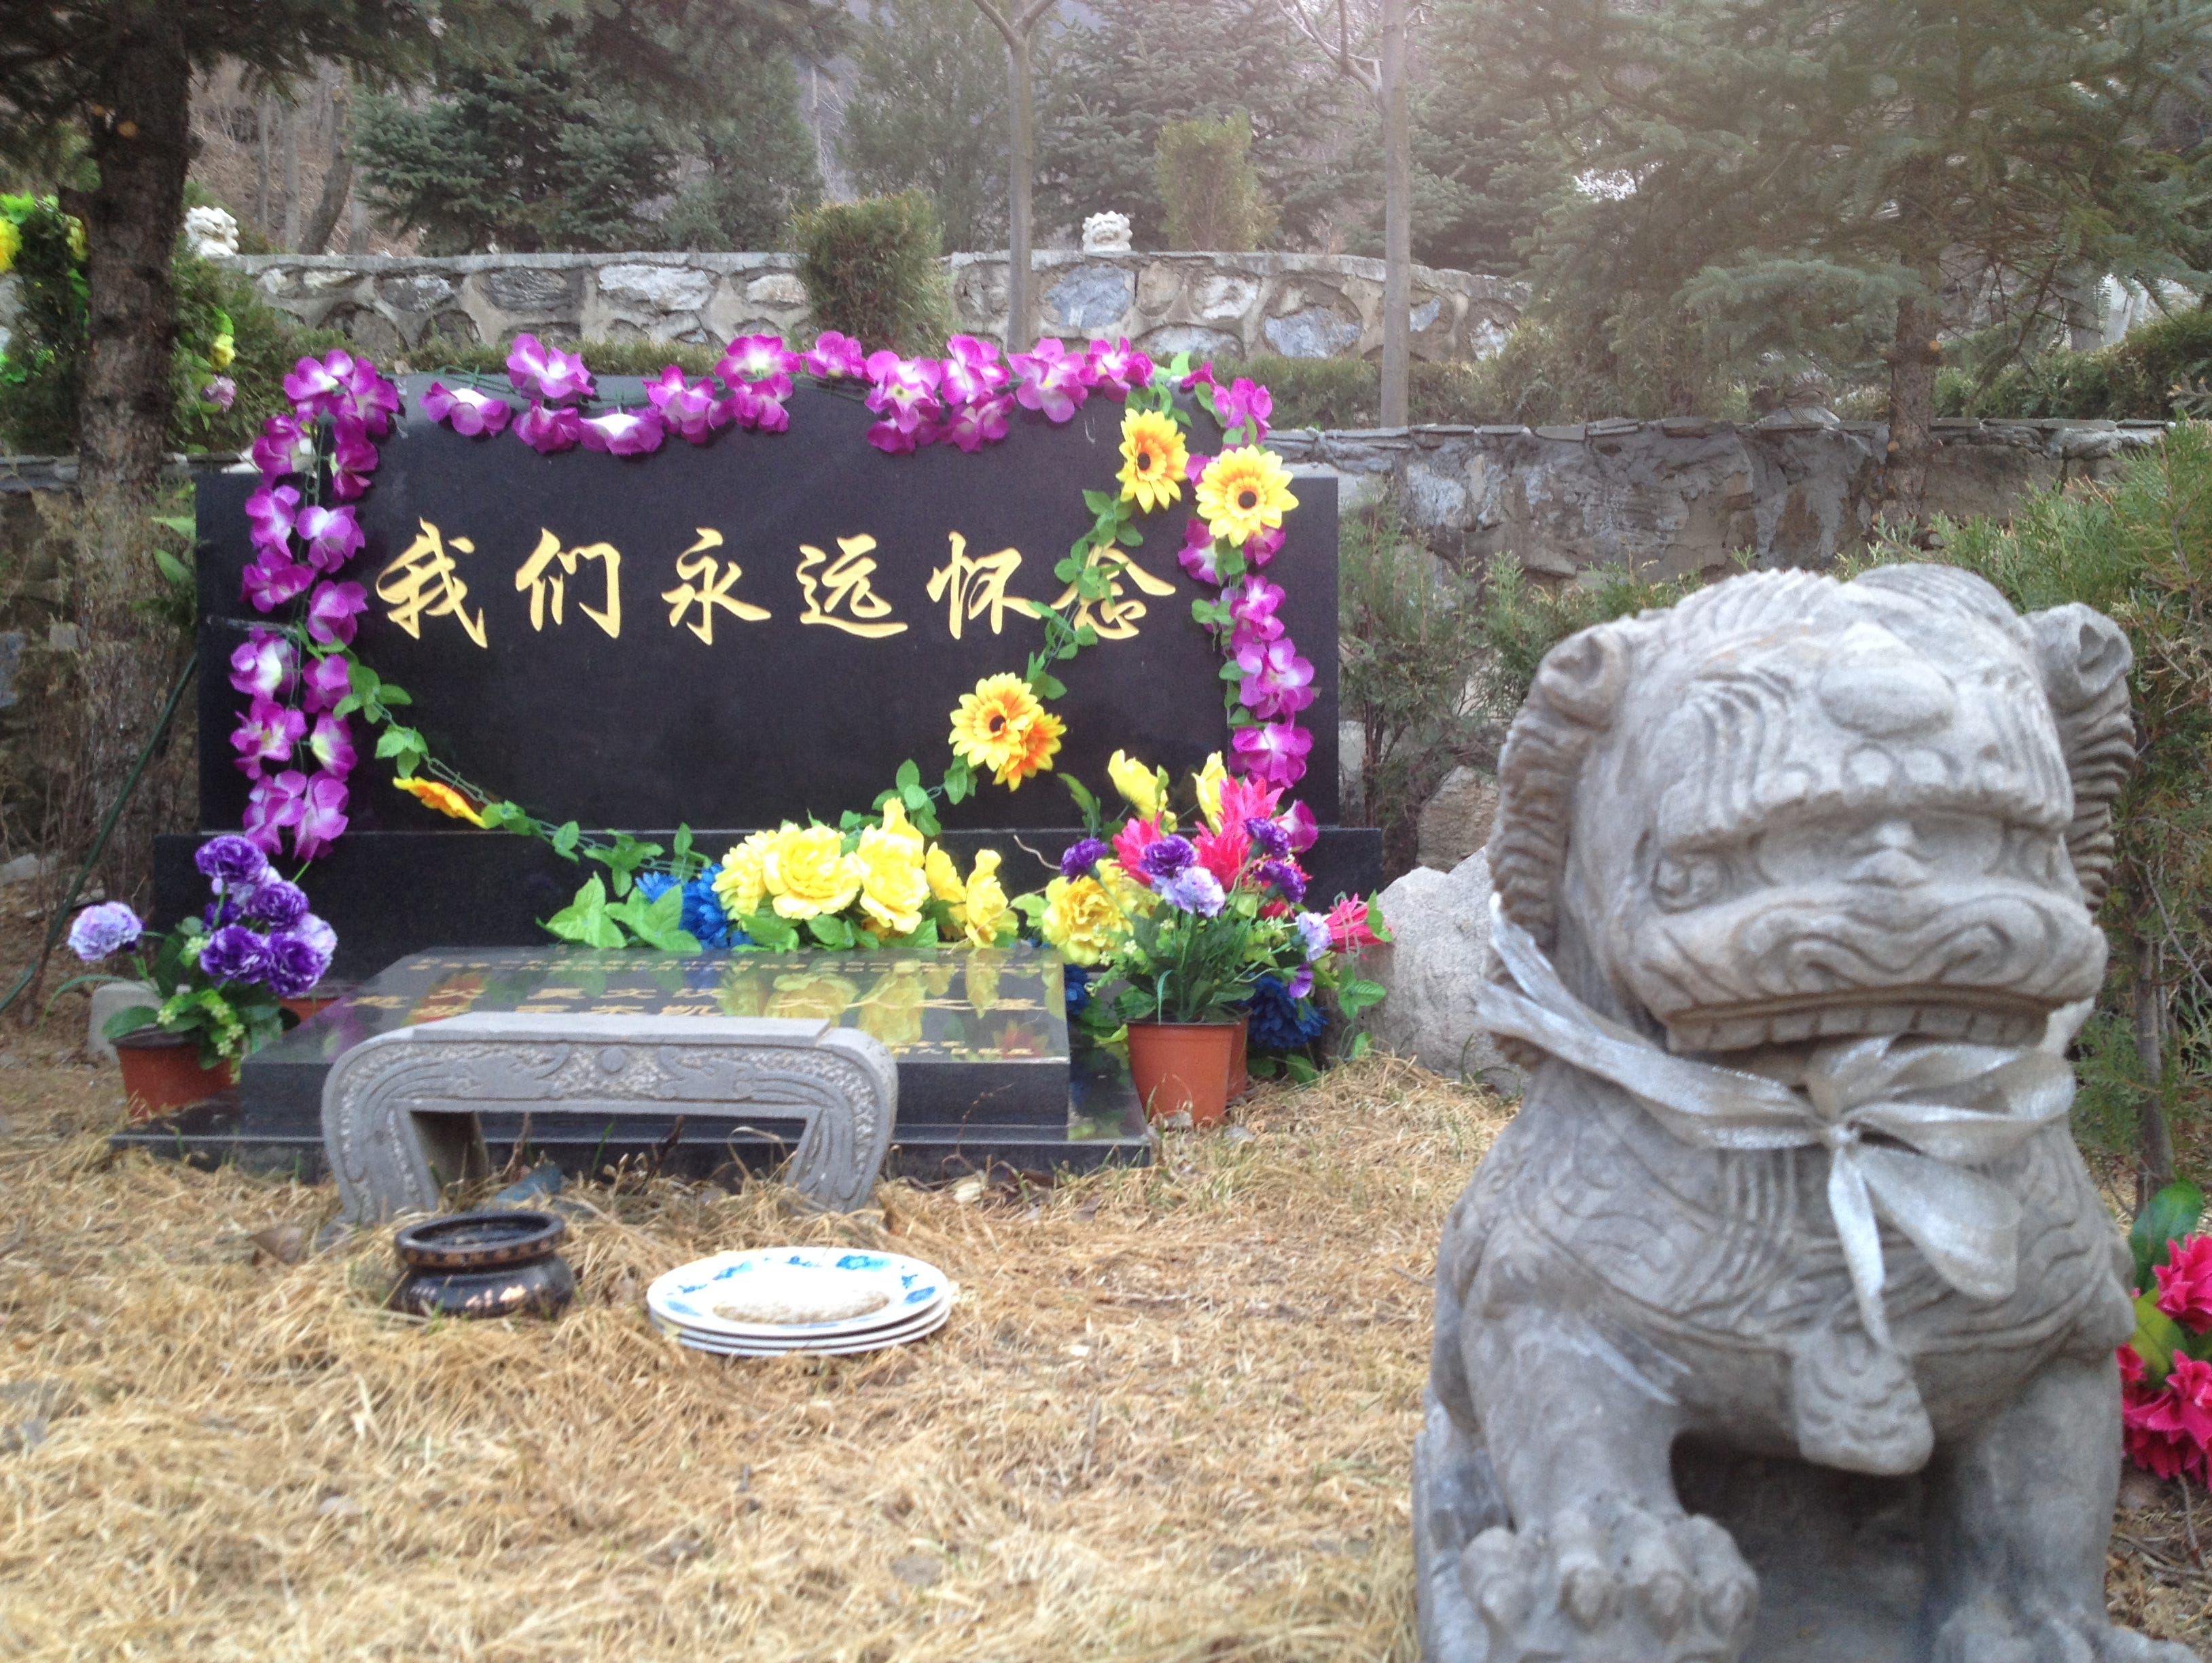 A tomb at Jiugongshan, an upmarket cemetery near the Great Wall north of the Chinese capital, which targets rich Beijingers with tombs costing over $10,000.